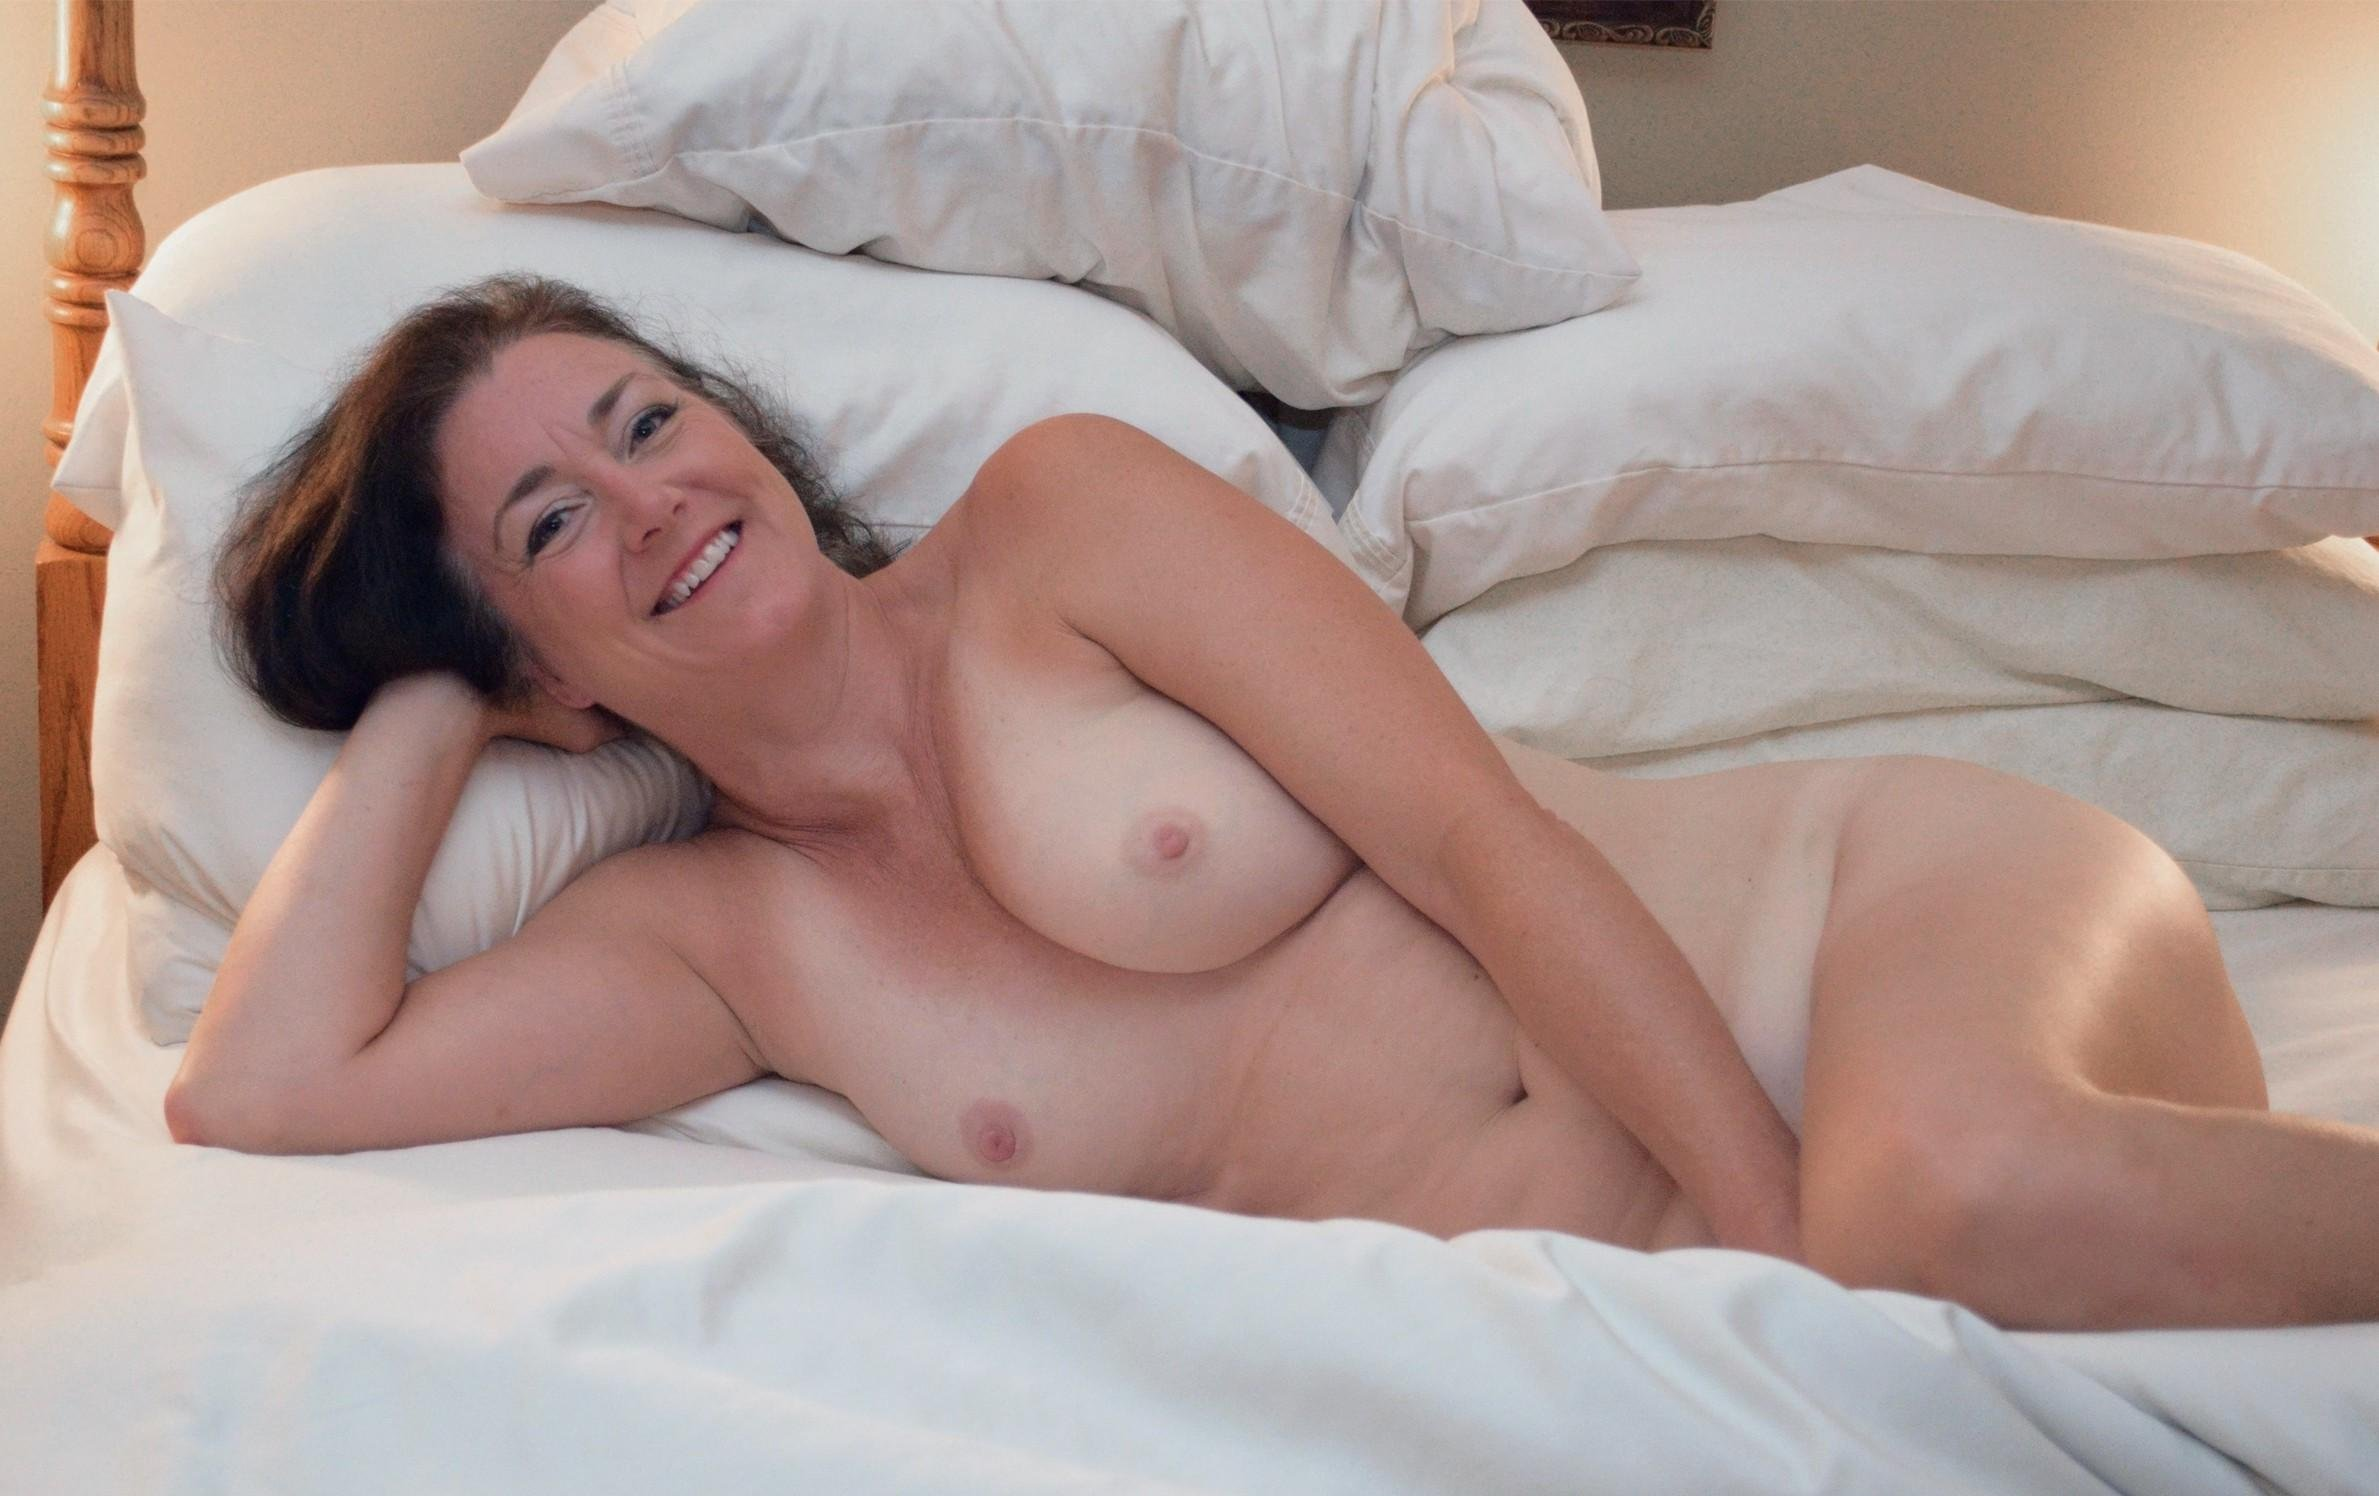 Naked Milf In Bed